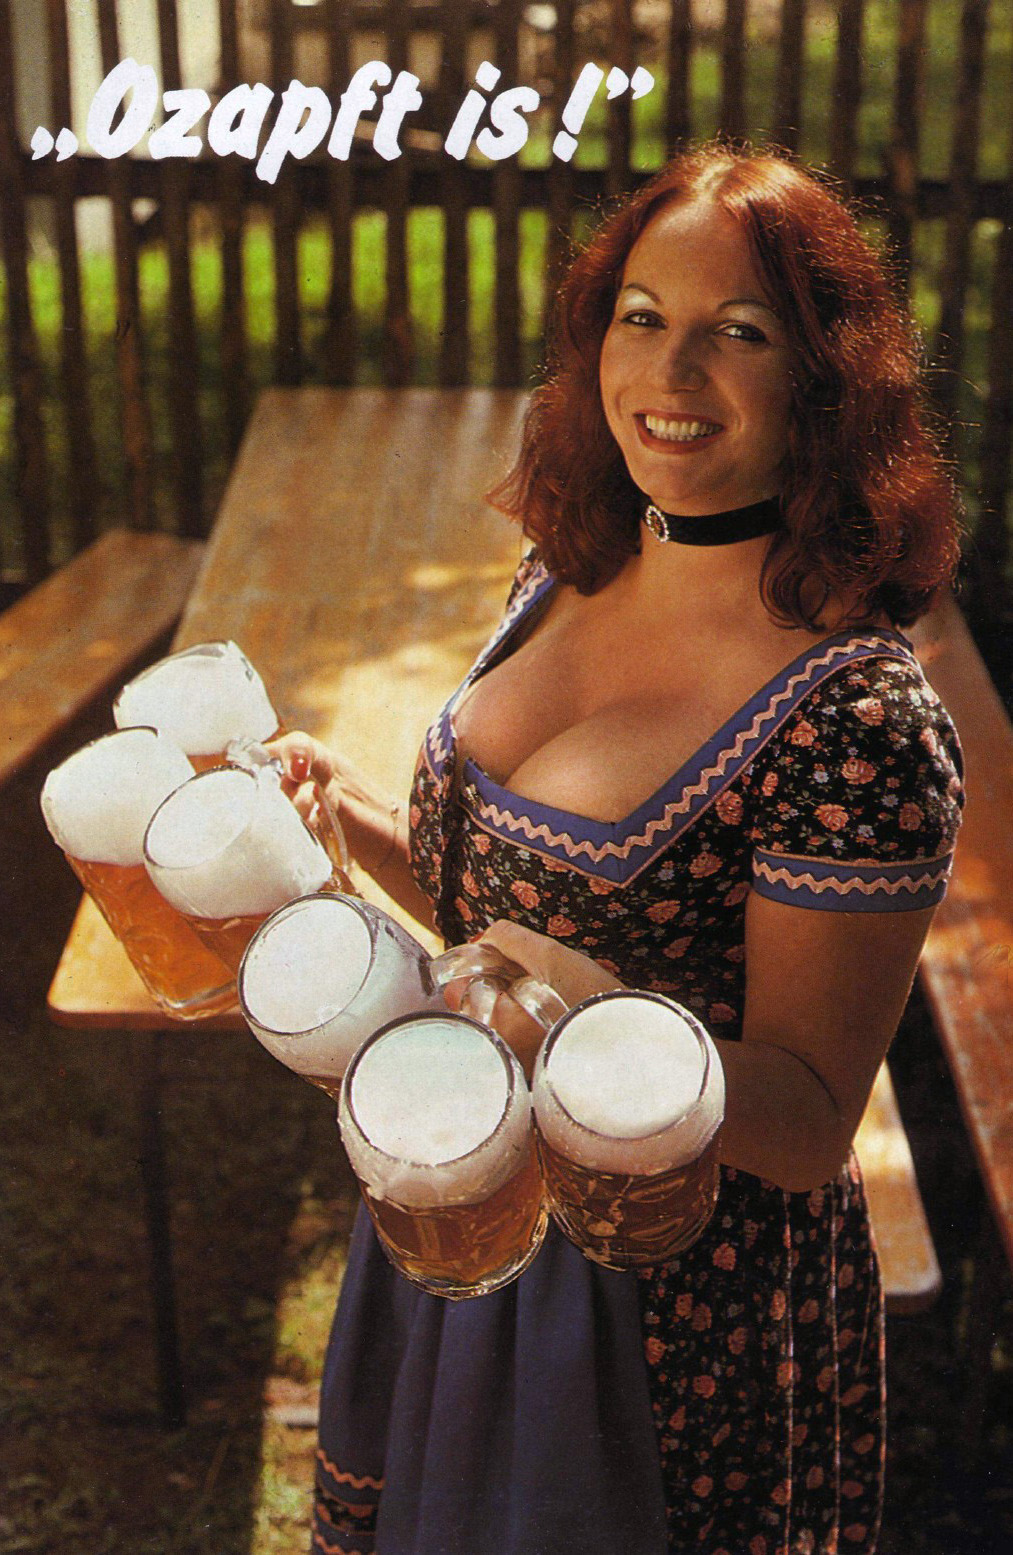 Barmaid in Dirndl Dress at Oktoberfest Pleasure Magazine No. 42 0003 The Keg Is Tapped.jpg